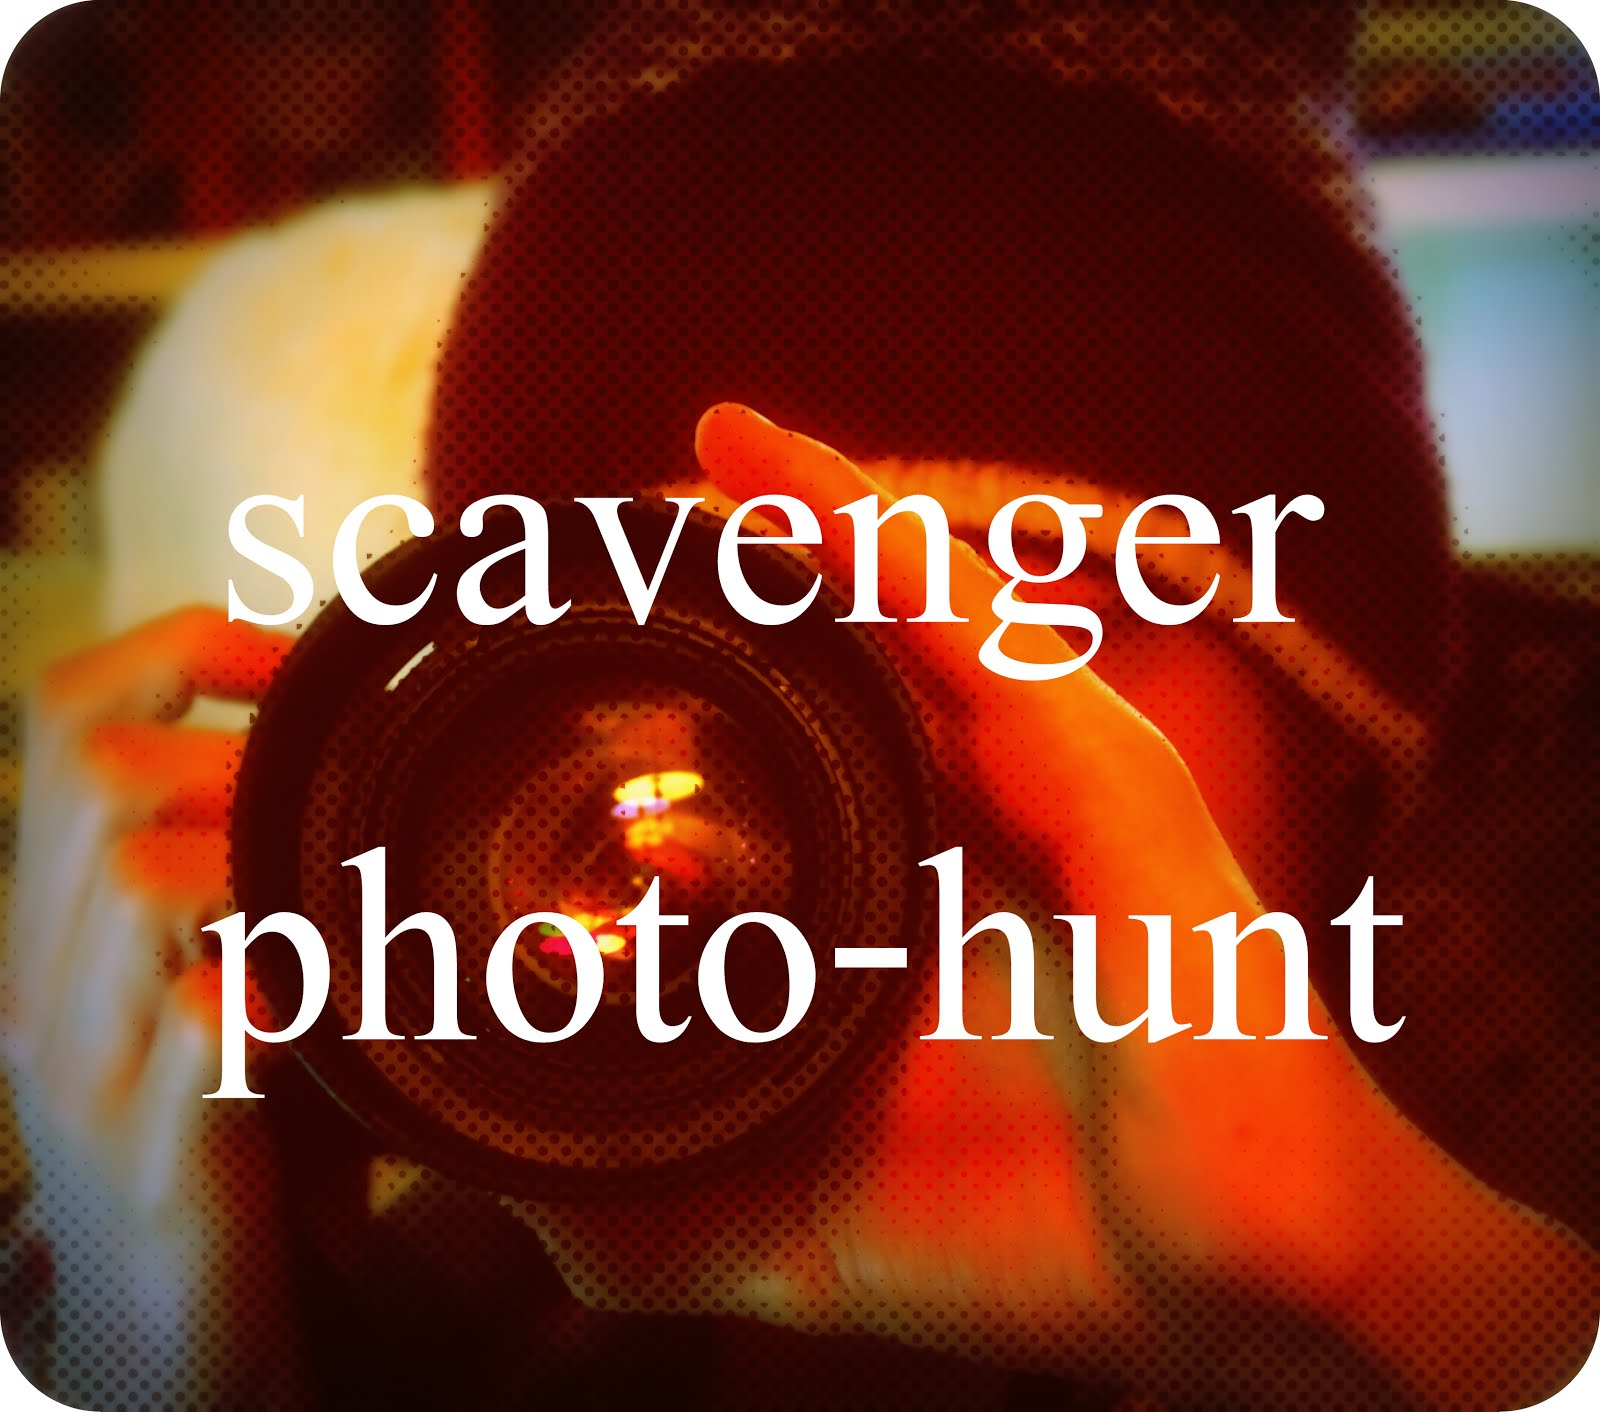 Scavenger photo-hunt BIG REVEAL for April is...